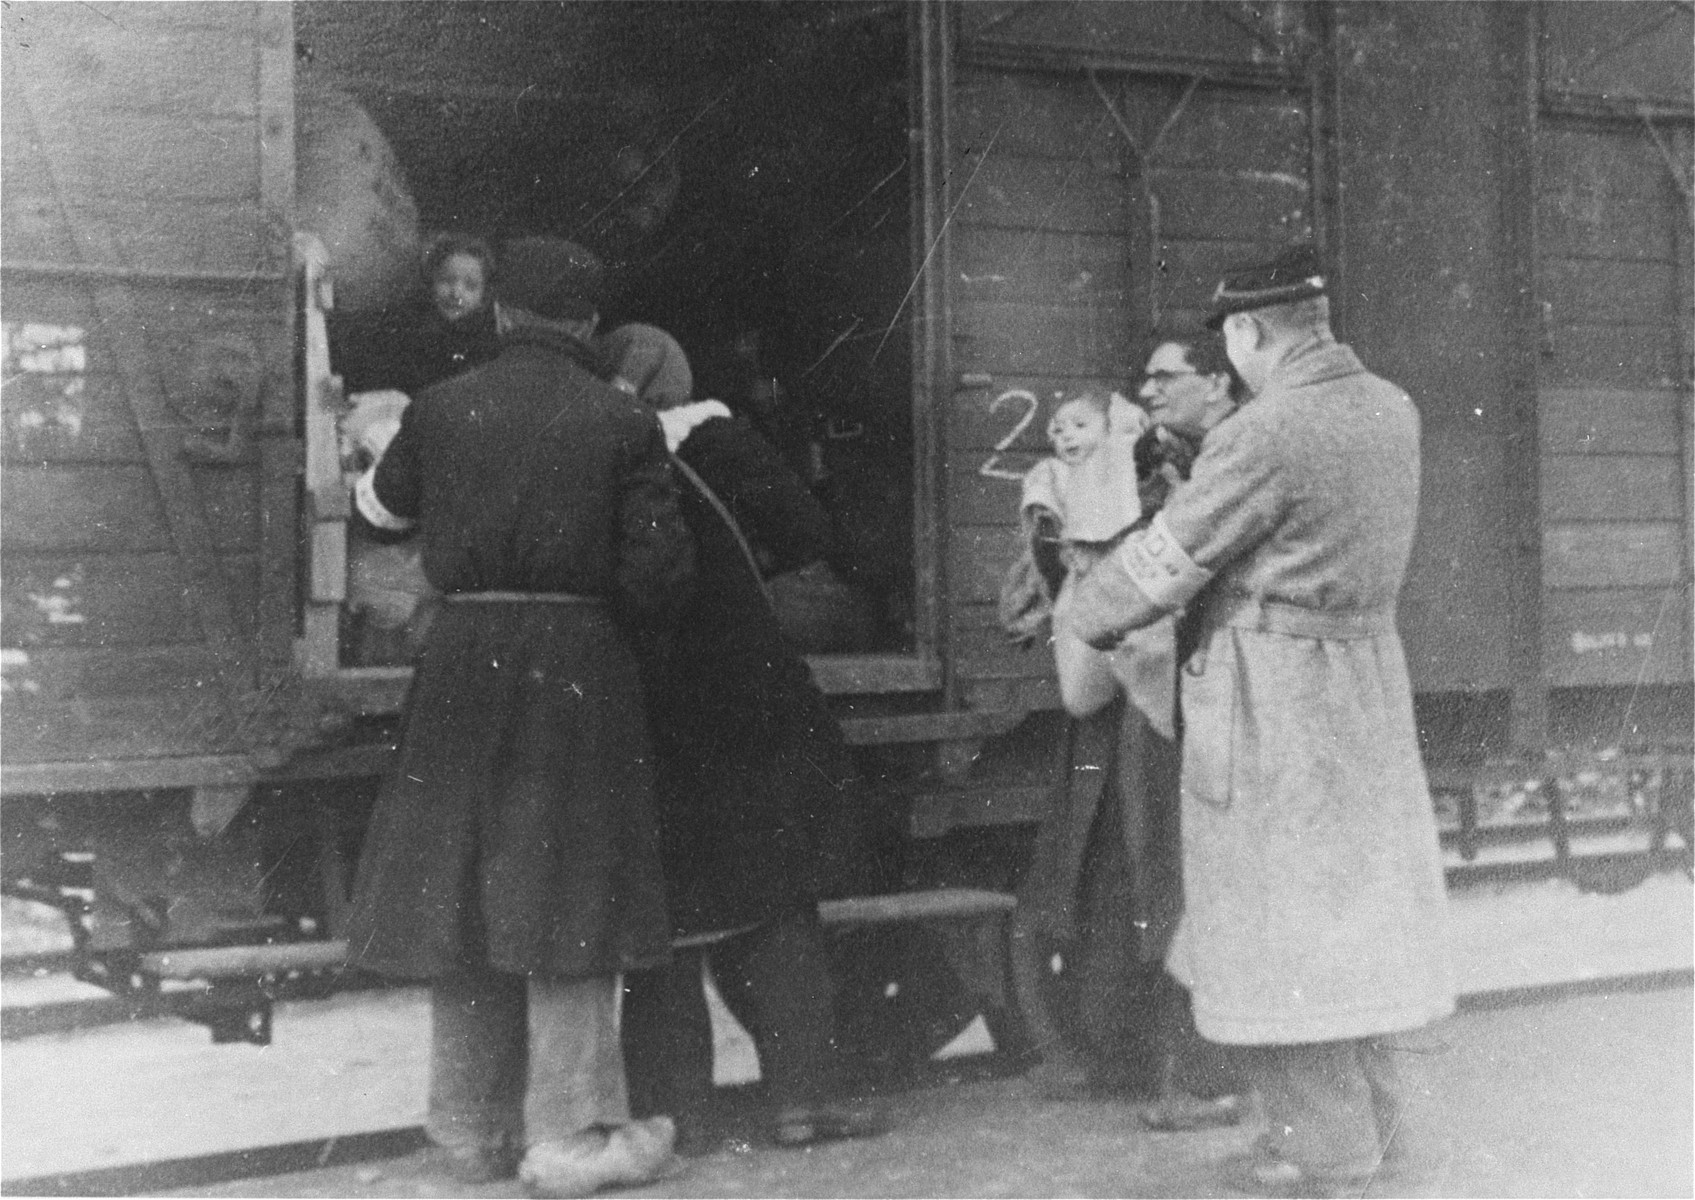 Members of the Ordedienst (Jewish police) give assistance to prisoners boarding a deportation train in the Westerbork transit camp.